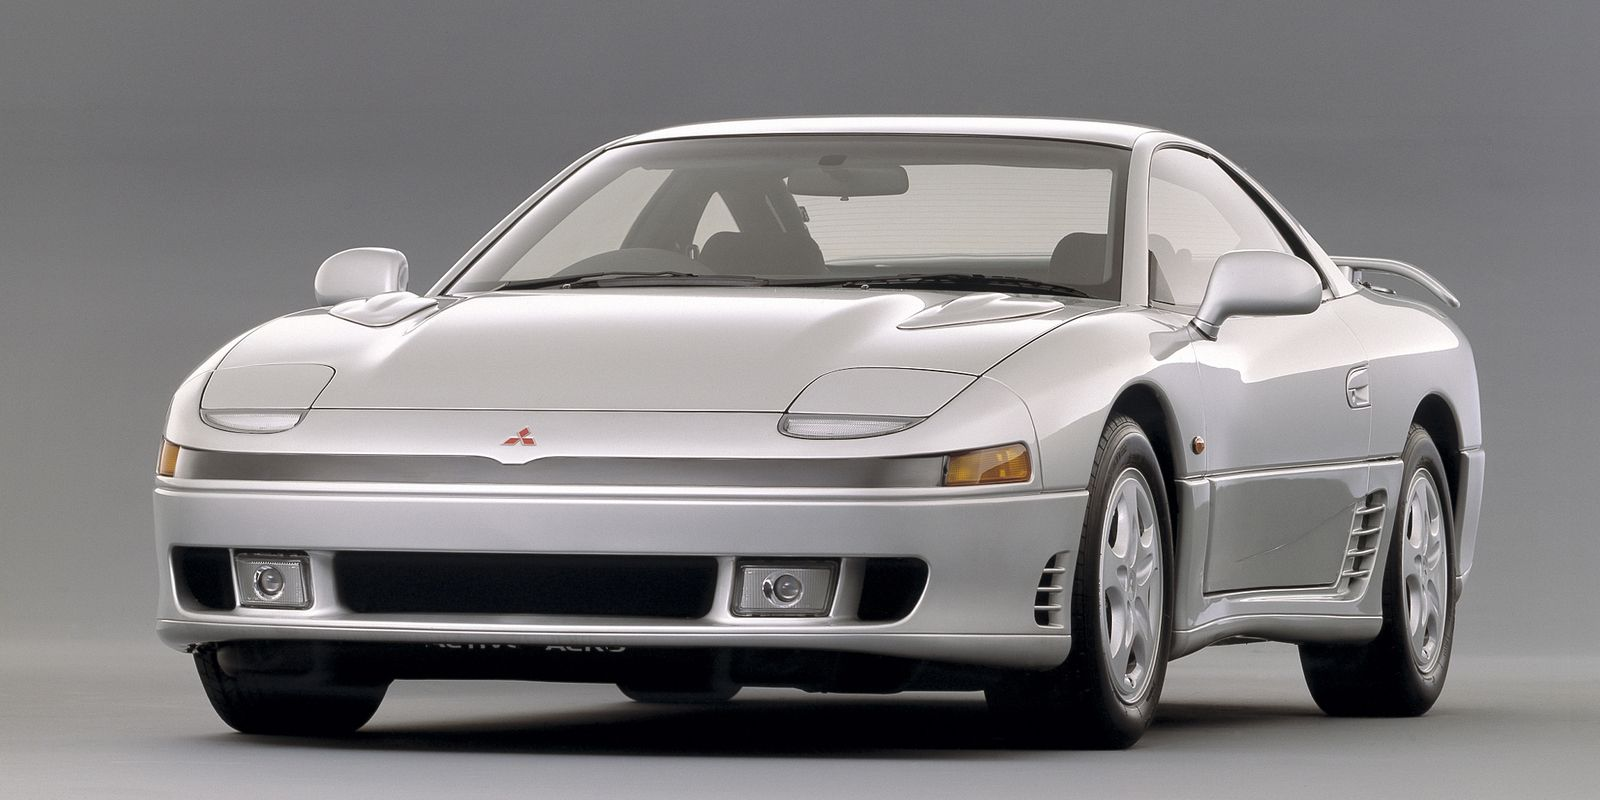 483d027265 17 Shockingly Cheap 90s Cars - Affordable Dream Cars from the 1990s